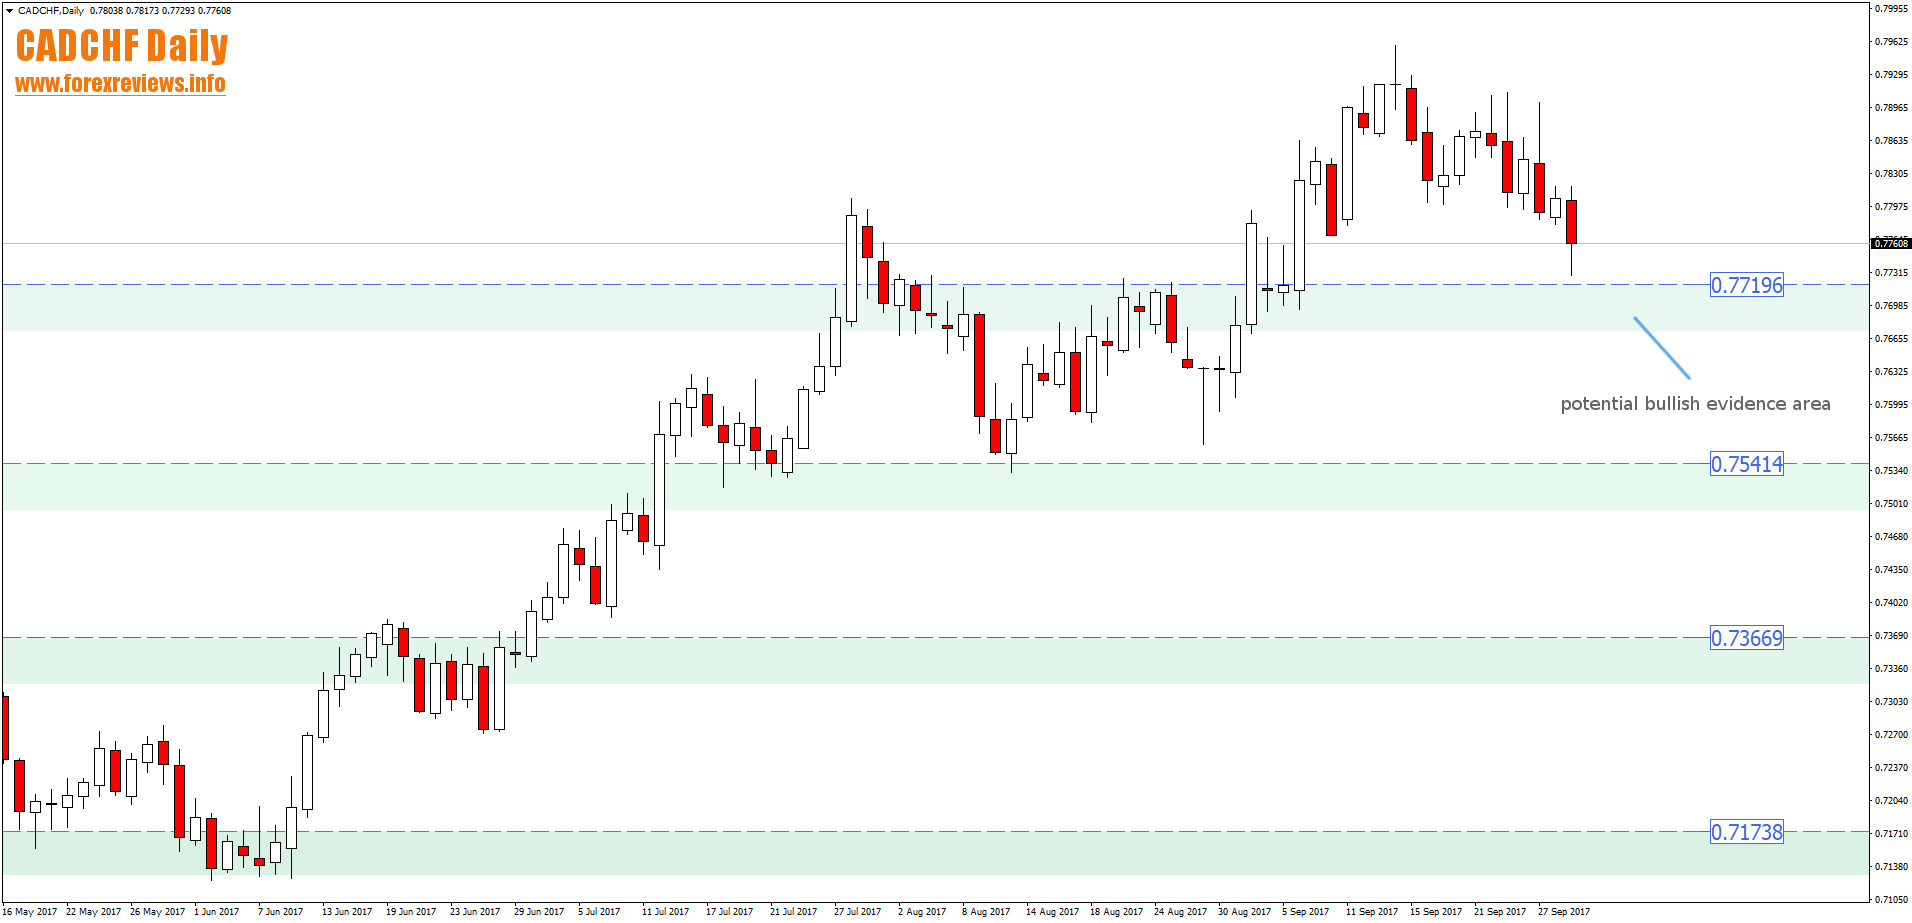 cadchf daily bullish evidence area